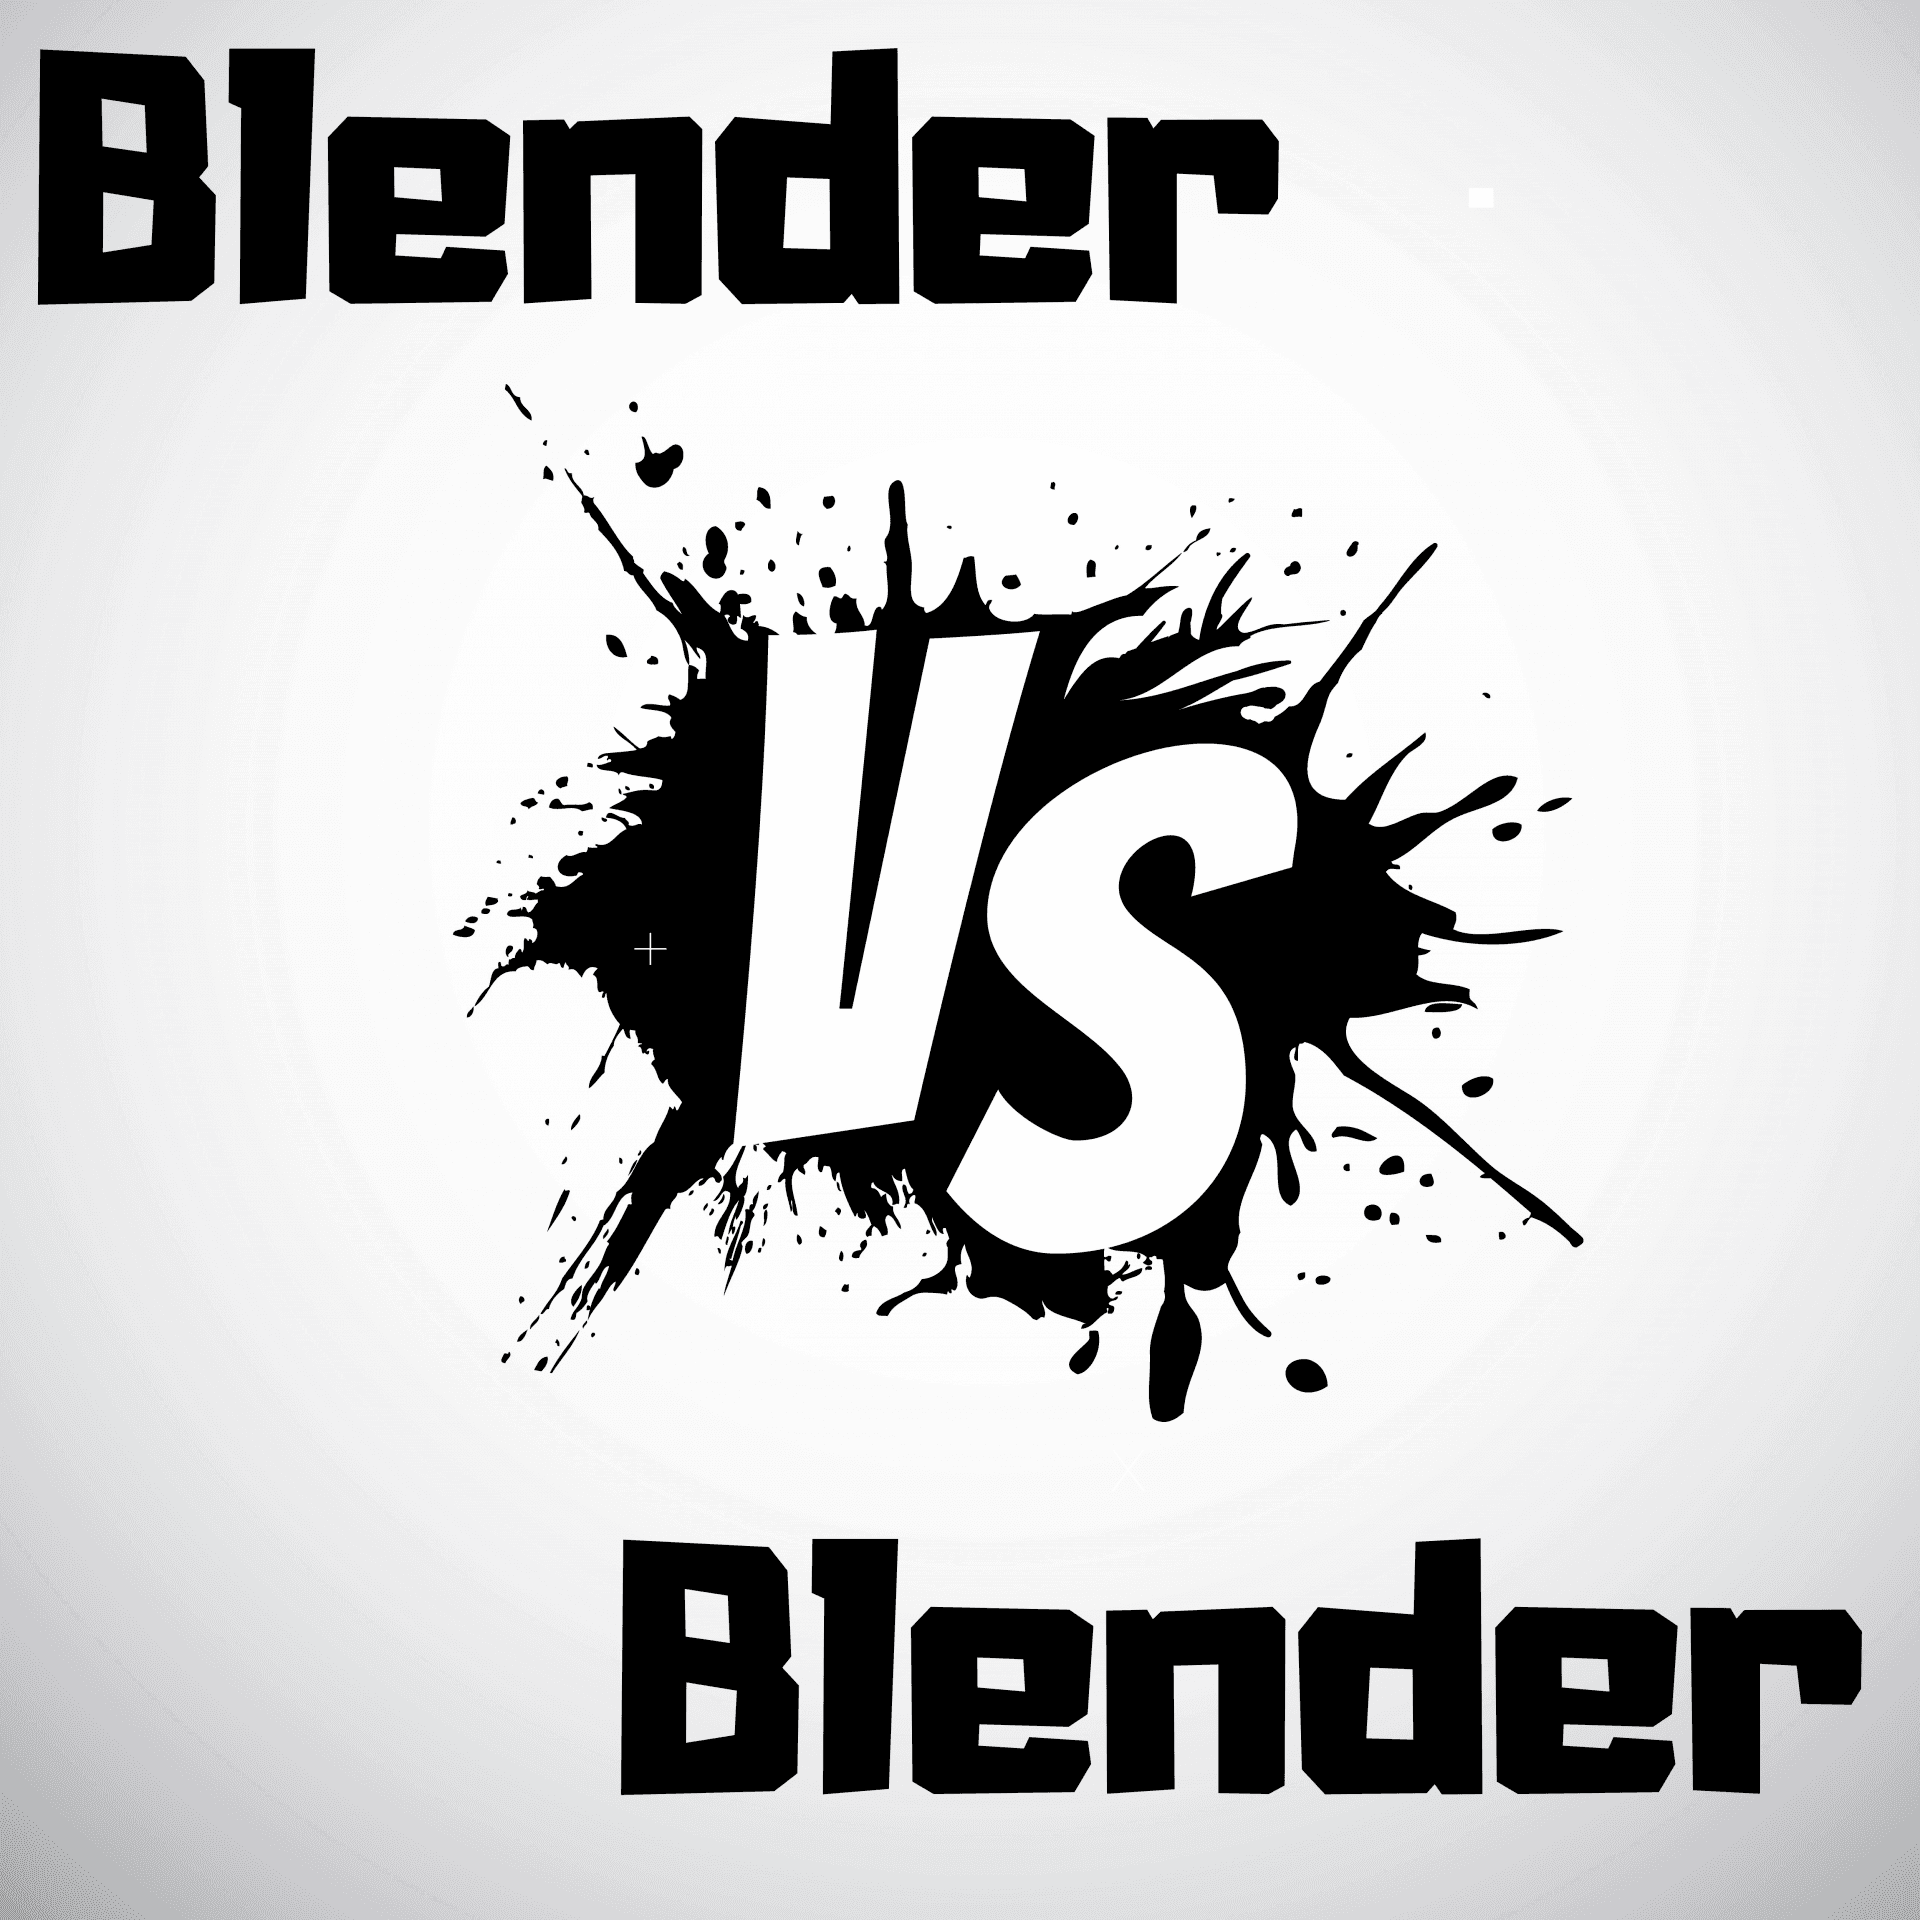 Black and white vector image stating Blender vs Blender